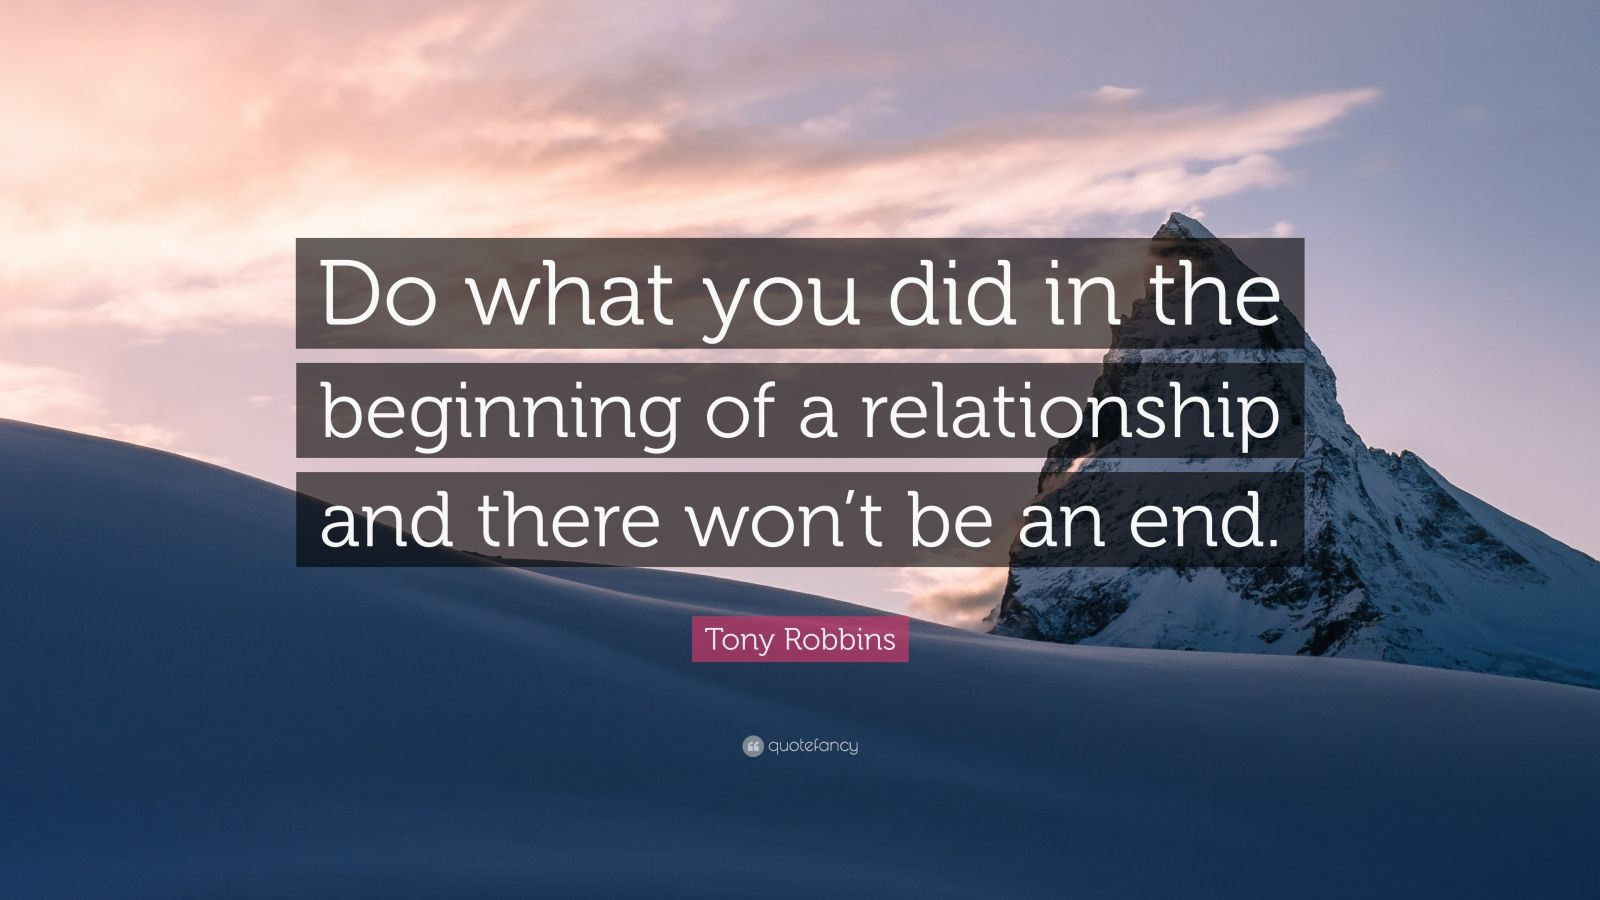 What to do in the beginning of a relationship